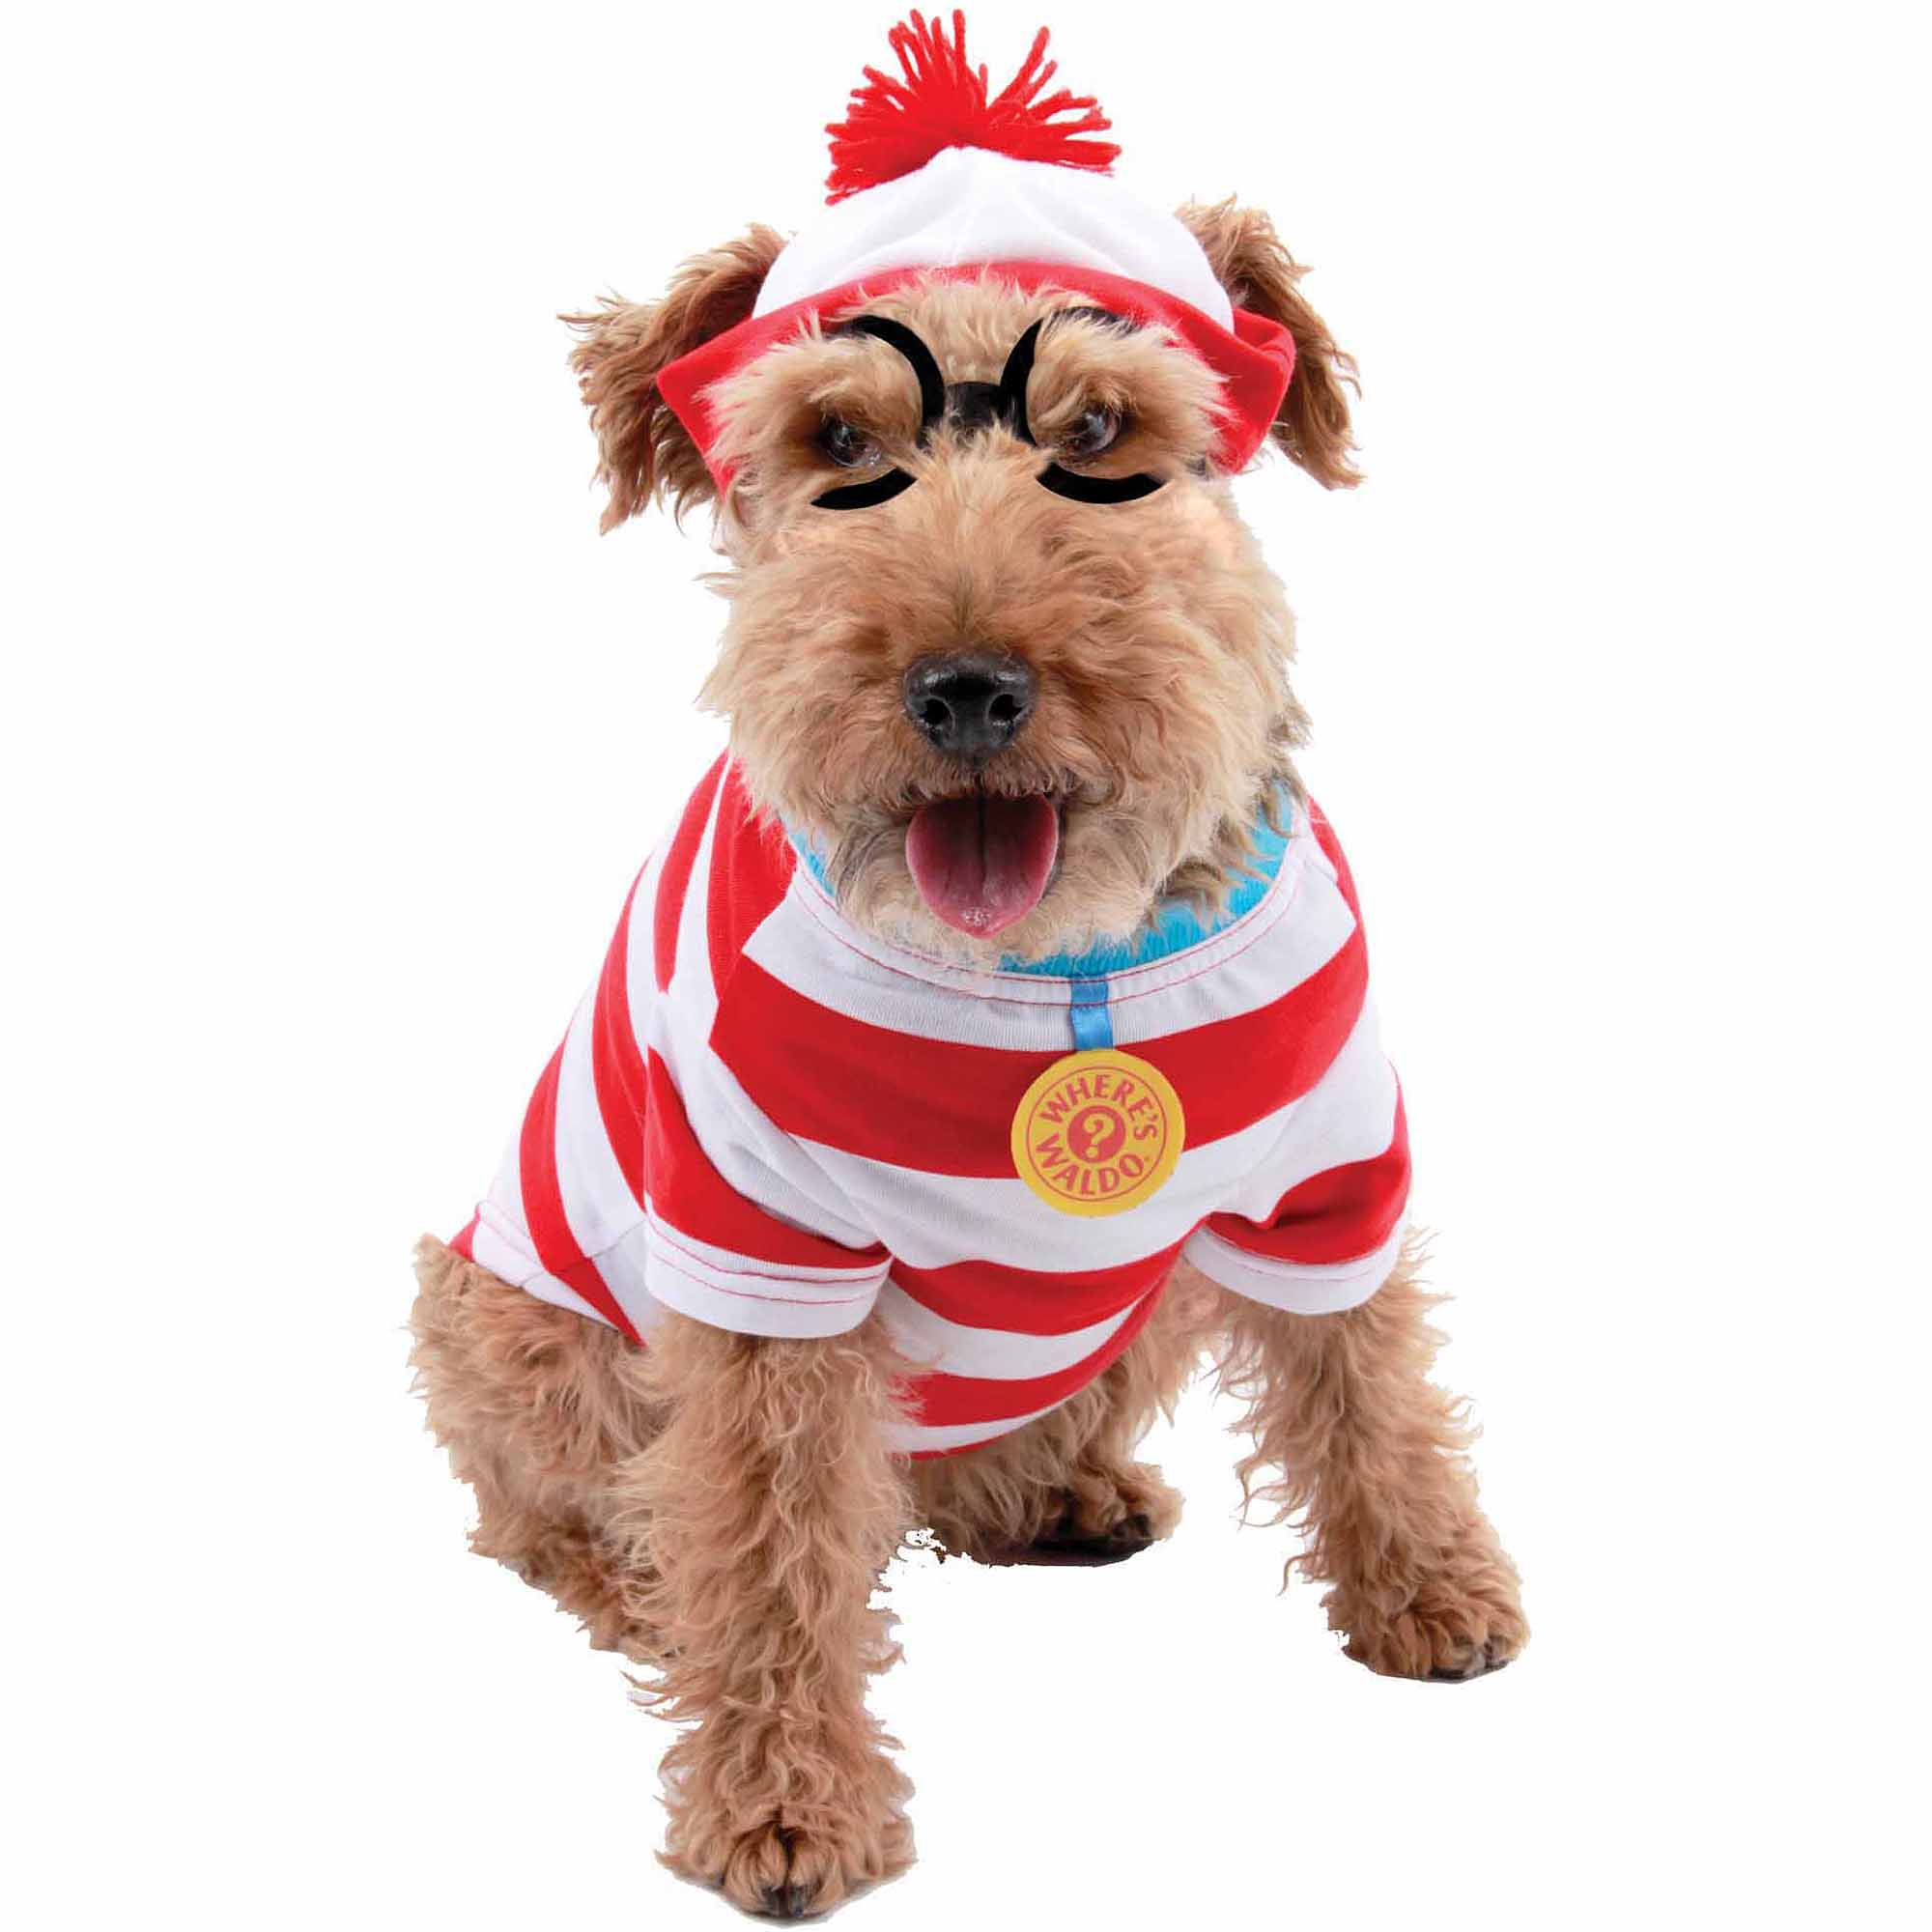 Whereu0027s Waldo Woof Dog Kit Halloween Pet Costume (Multiple Sizes Available)  sc 1 st  Walmart : dog whale costume  - Germanpascual.Com